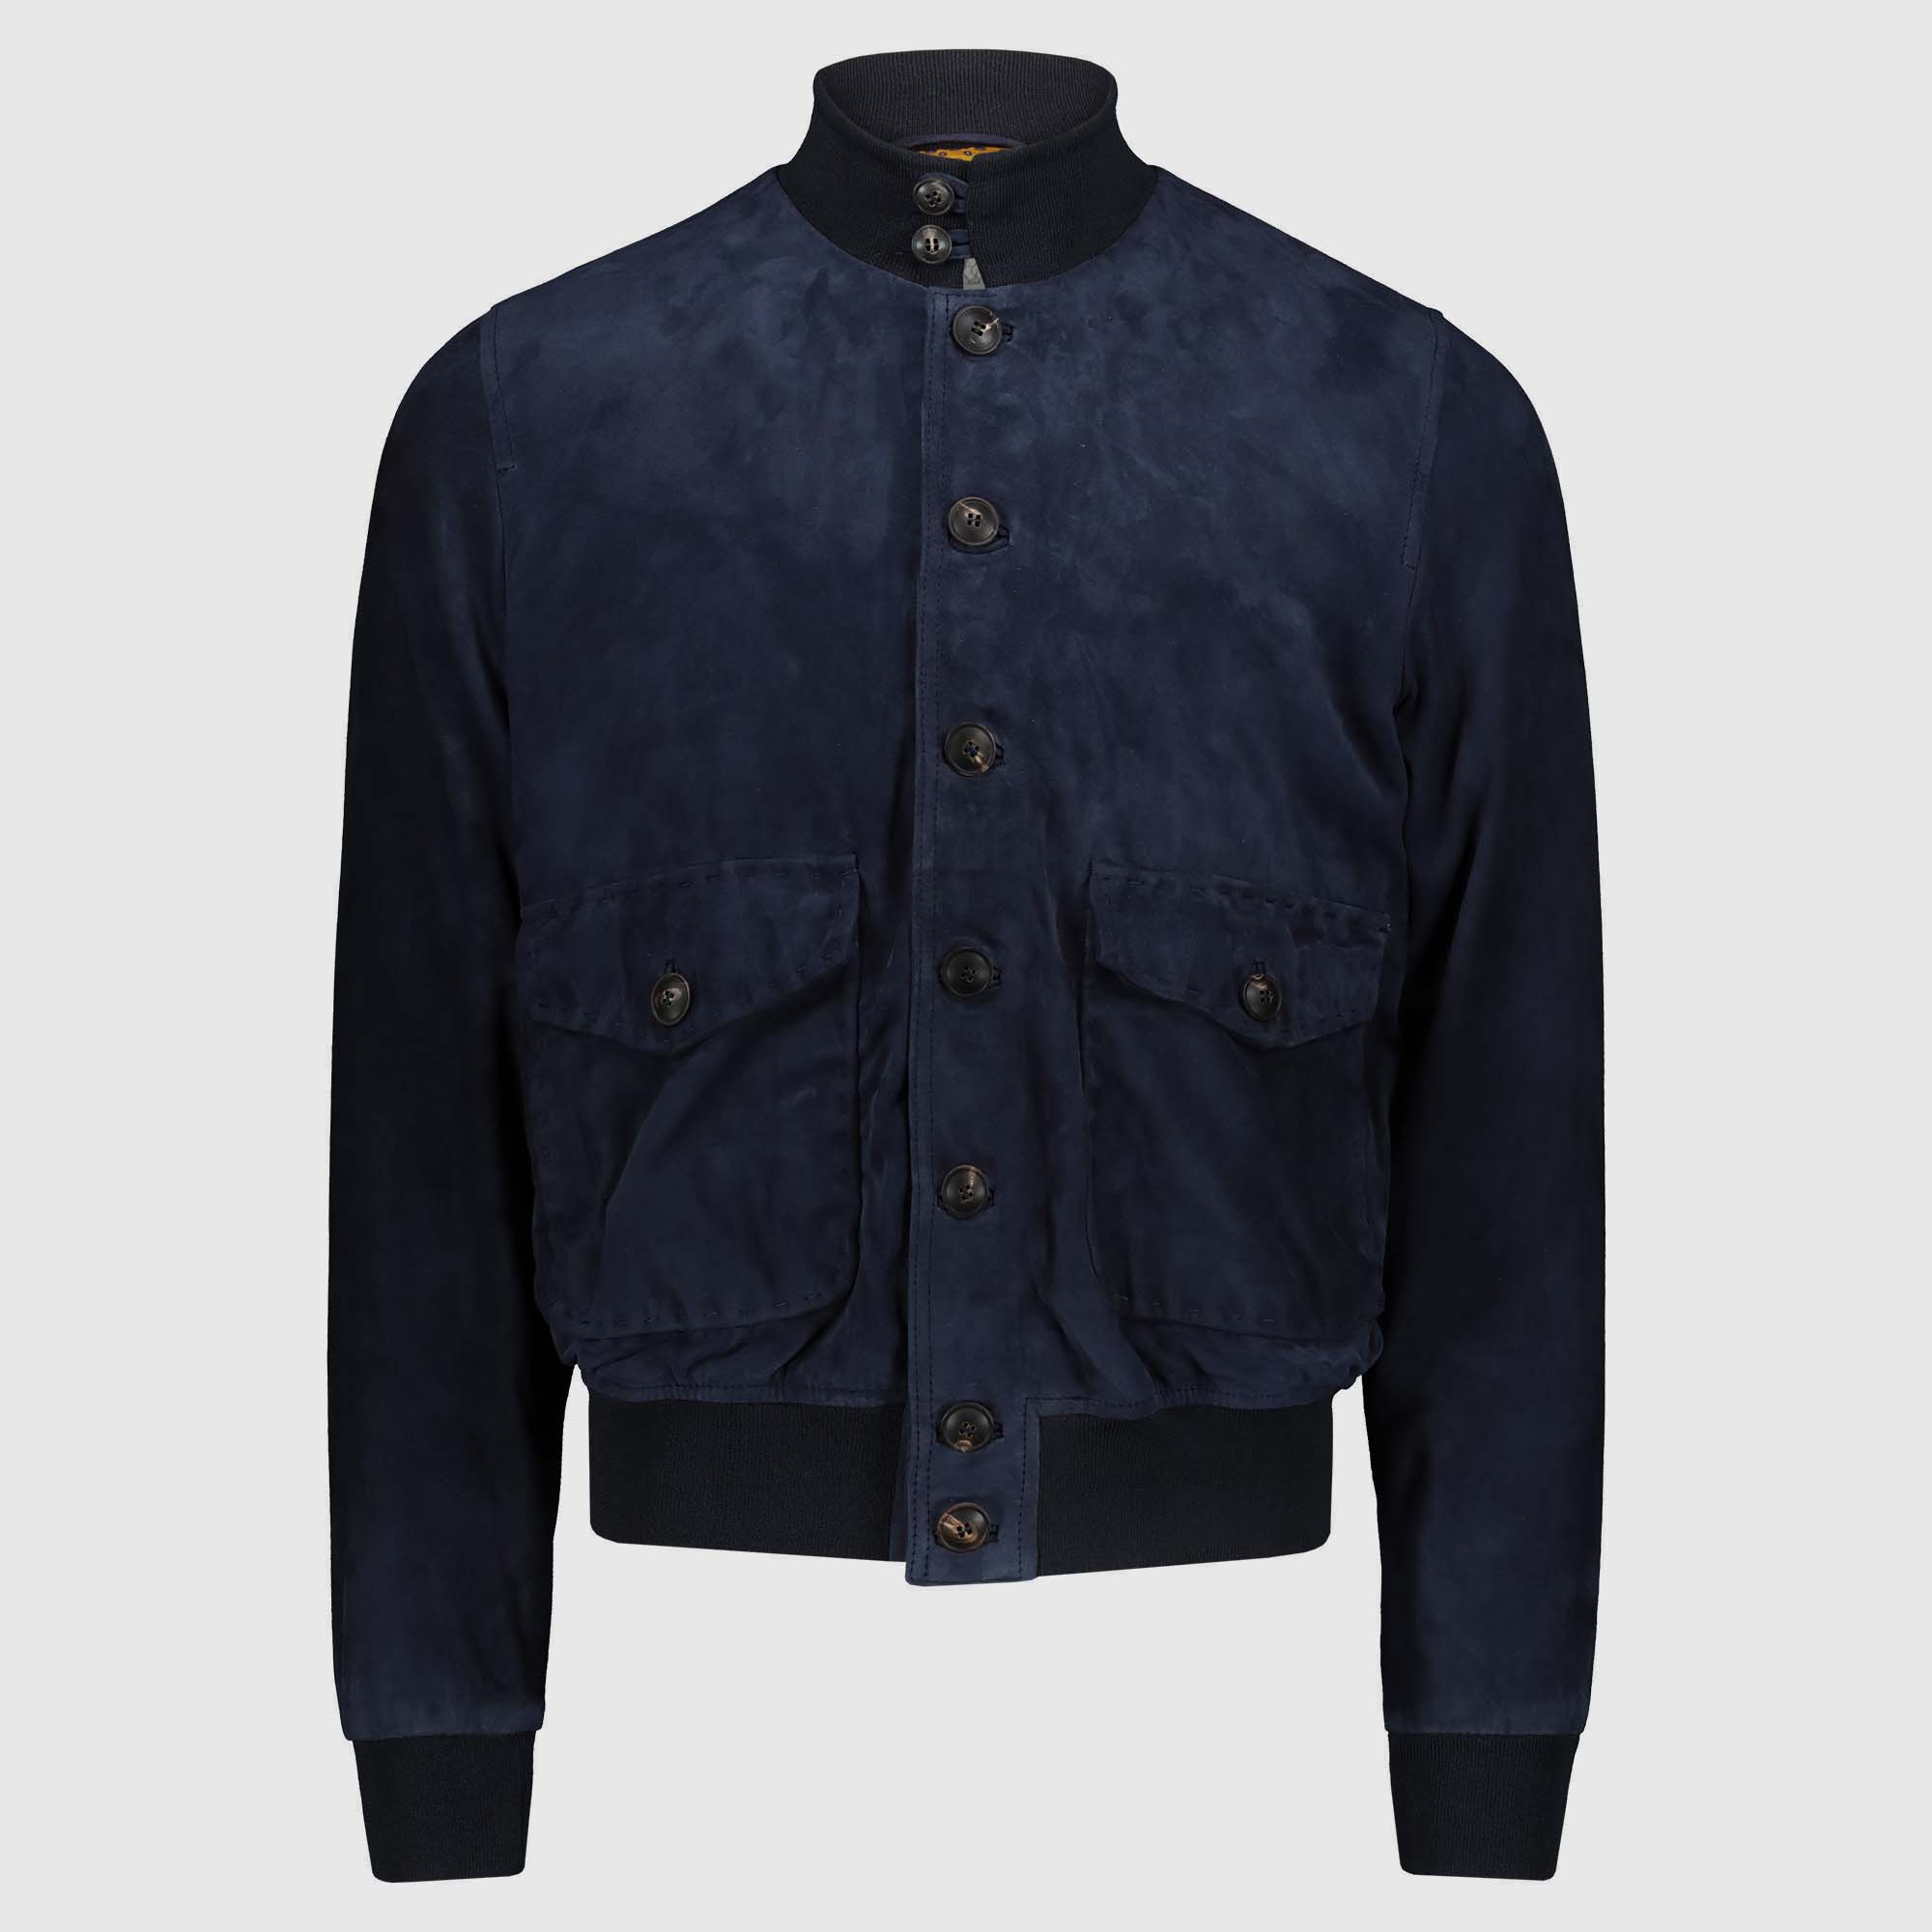 Blue suede Bomber Jacket A1 Cary